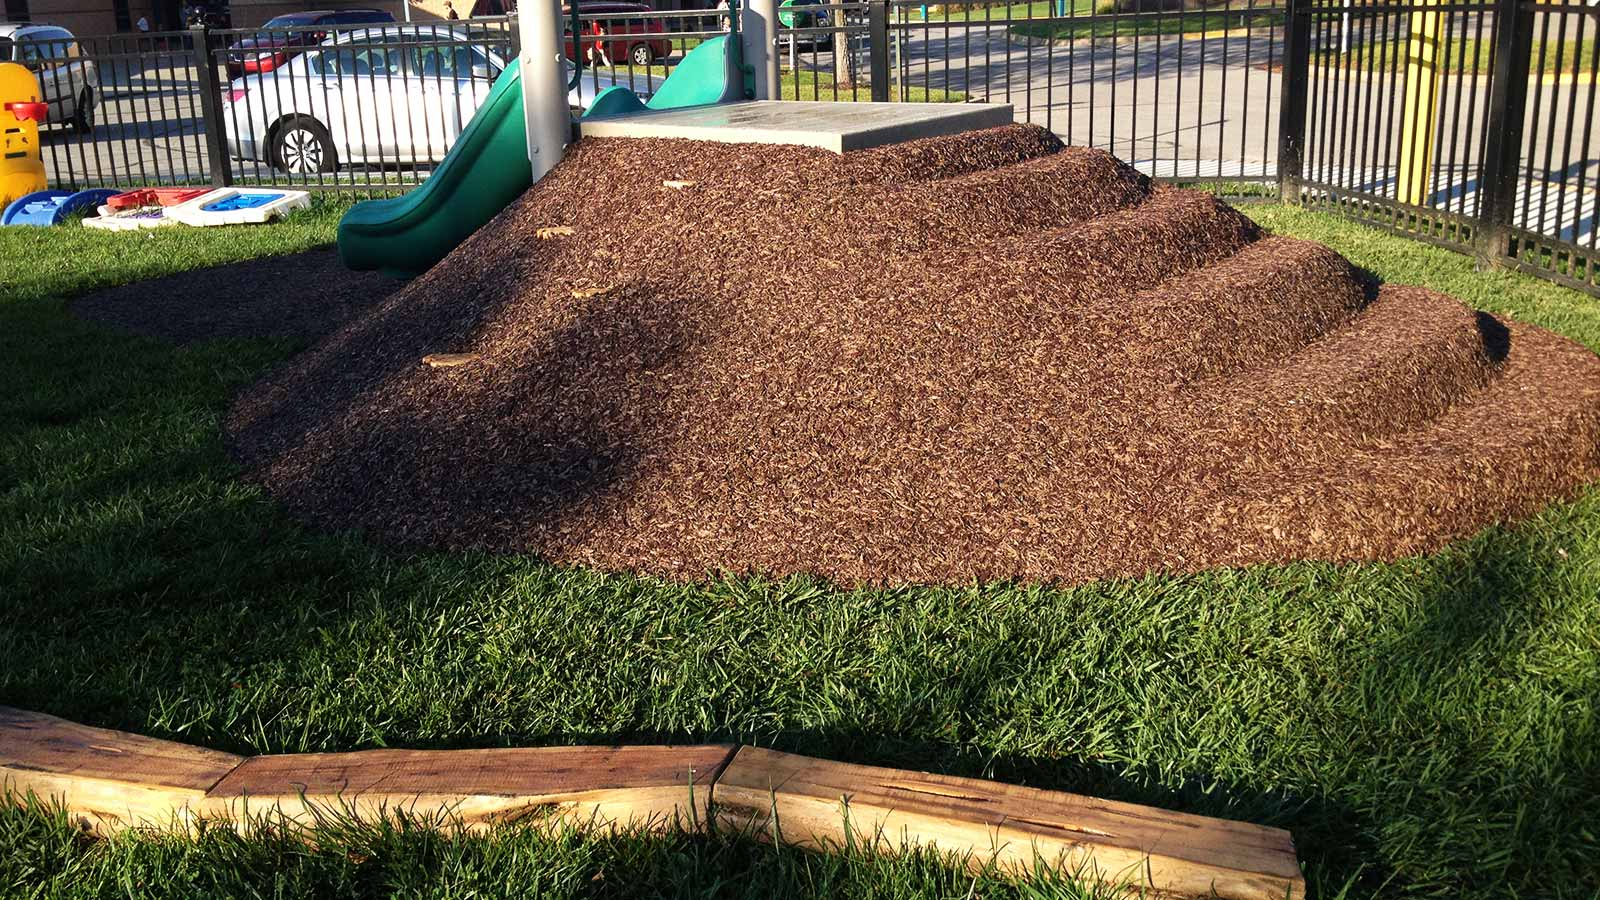 Ecoturf Surfacing Taylormade Co products Bonded Rubber Mulch creative steps design